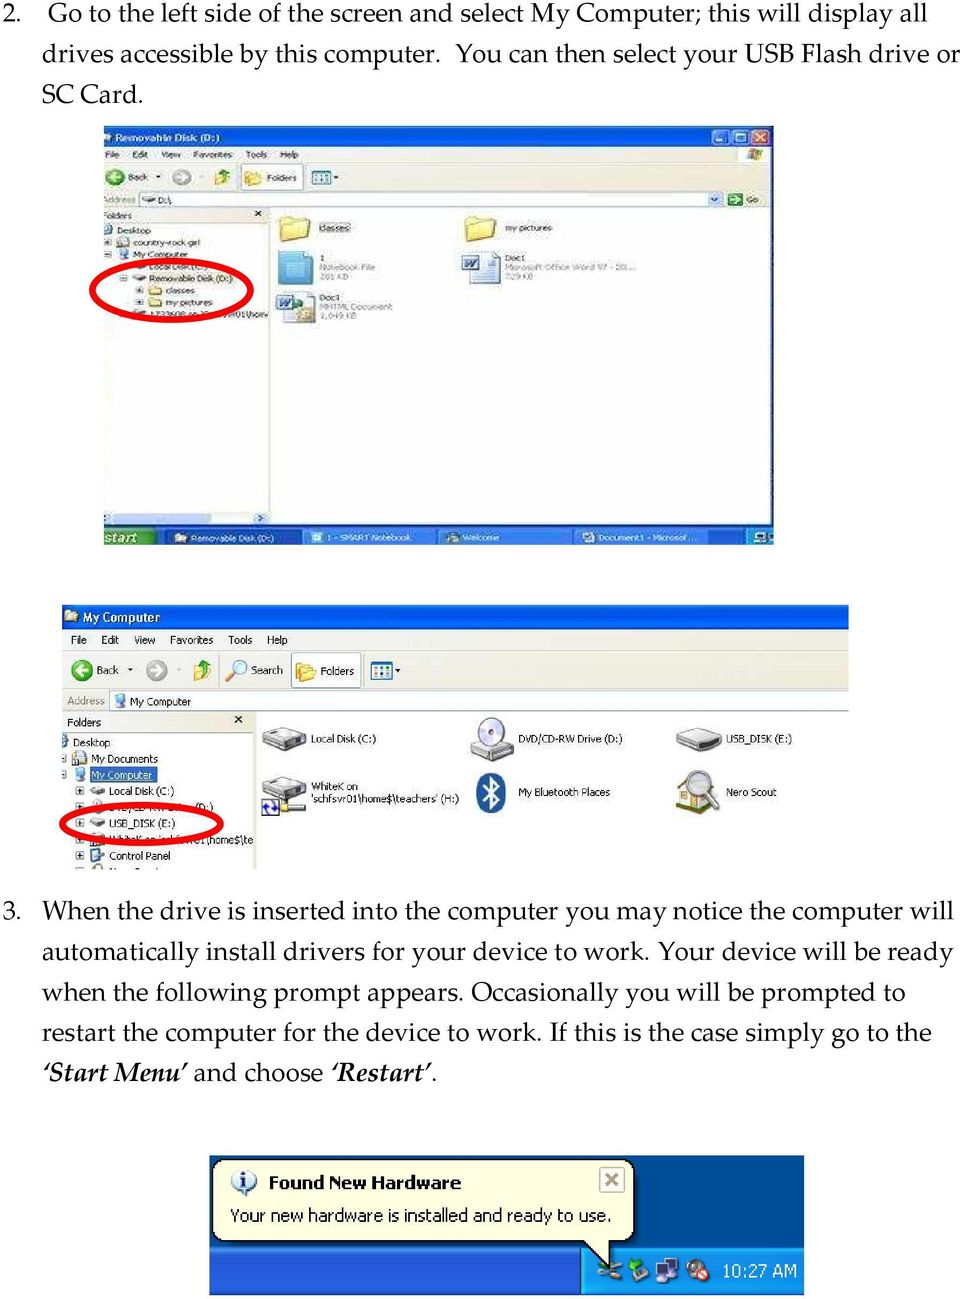 When the drive is inserted into the computer you may notice the computer will automatically install drivers for your device to